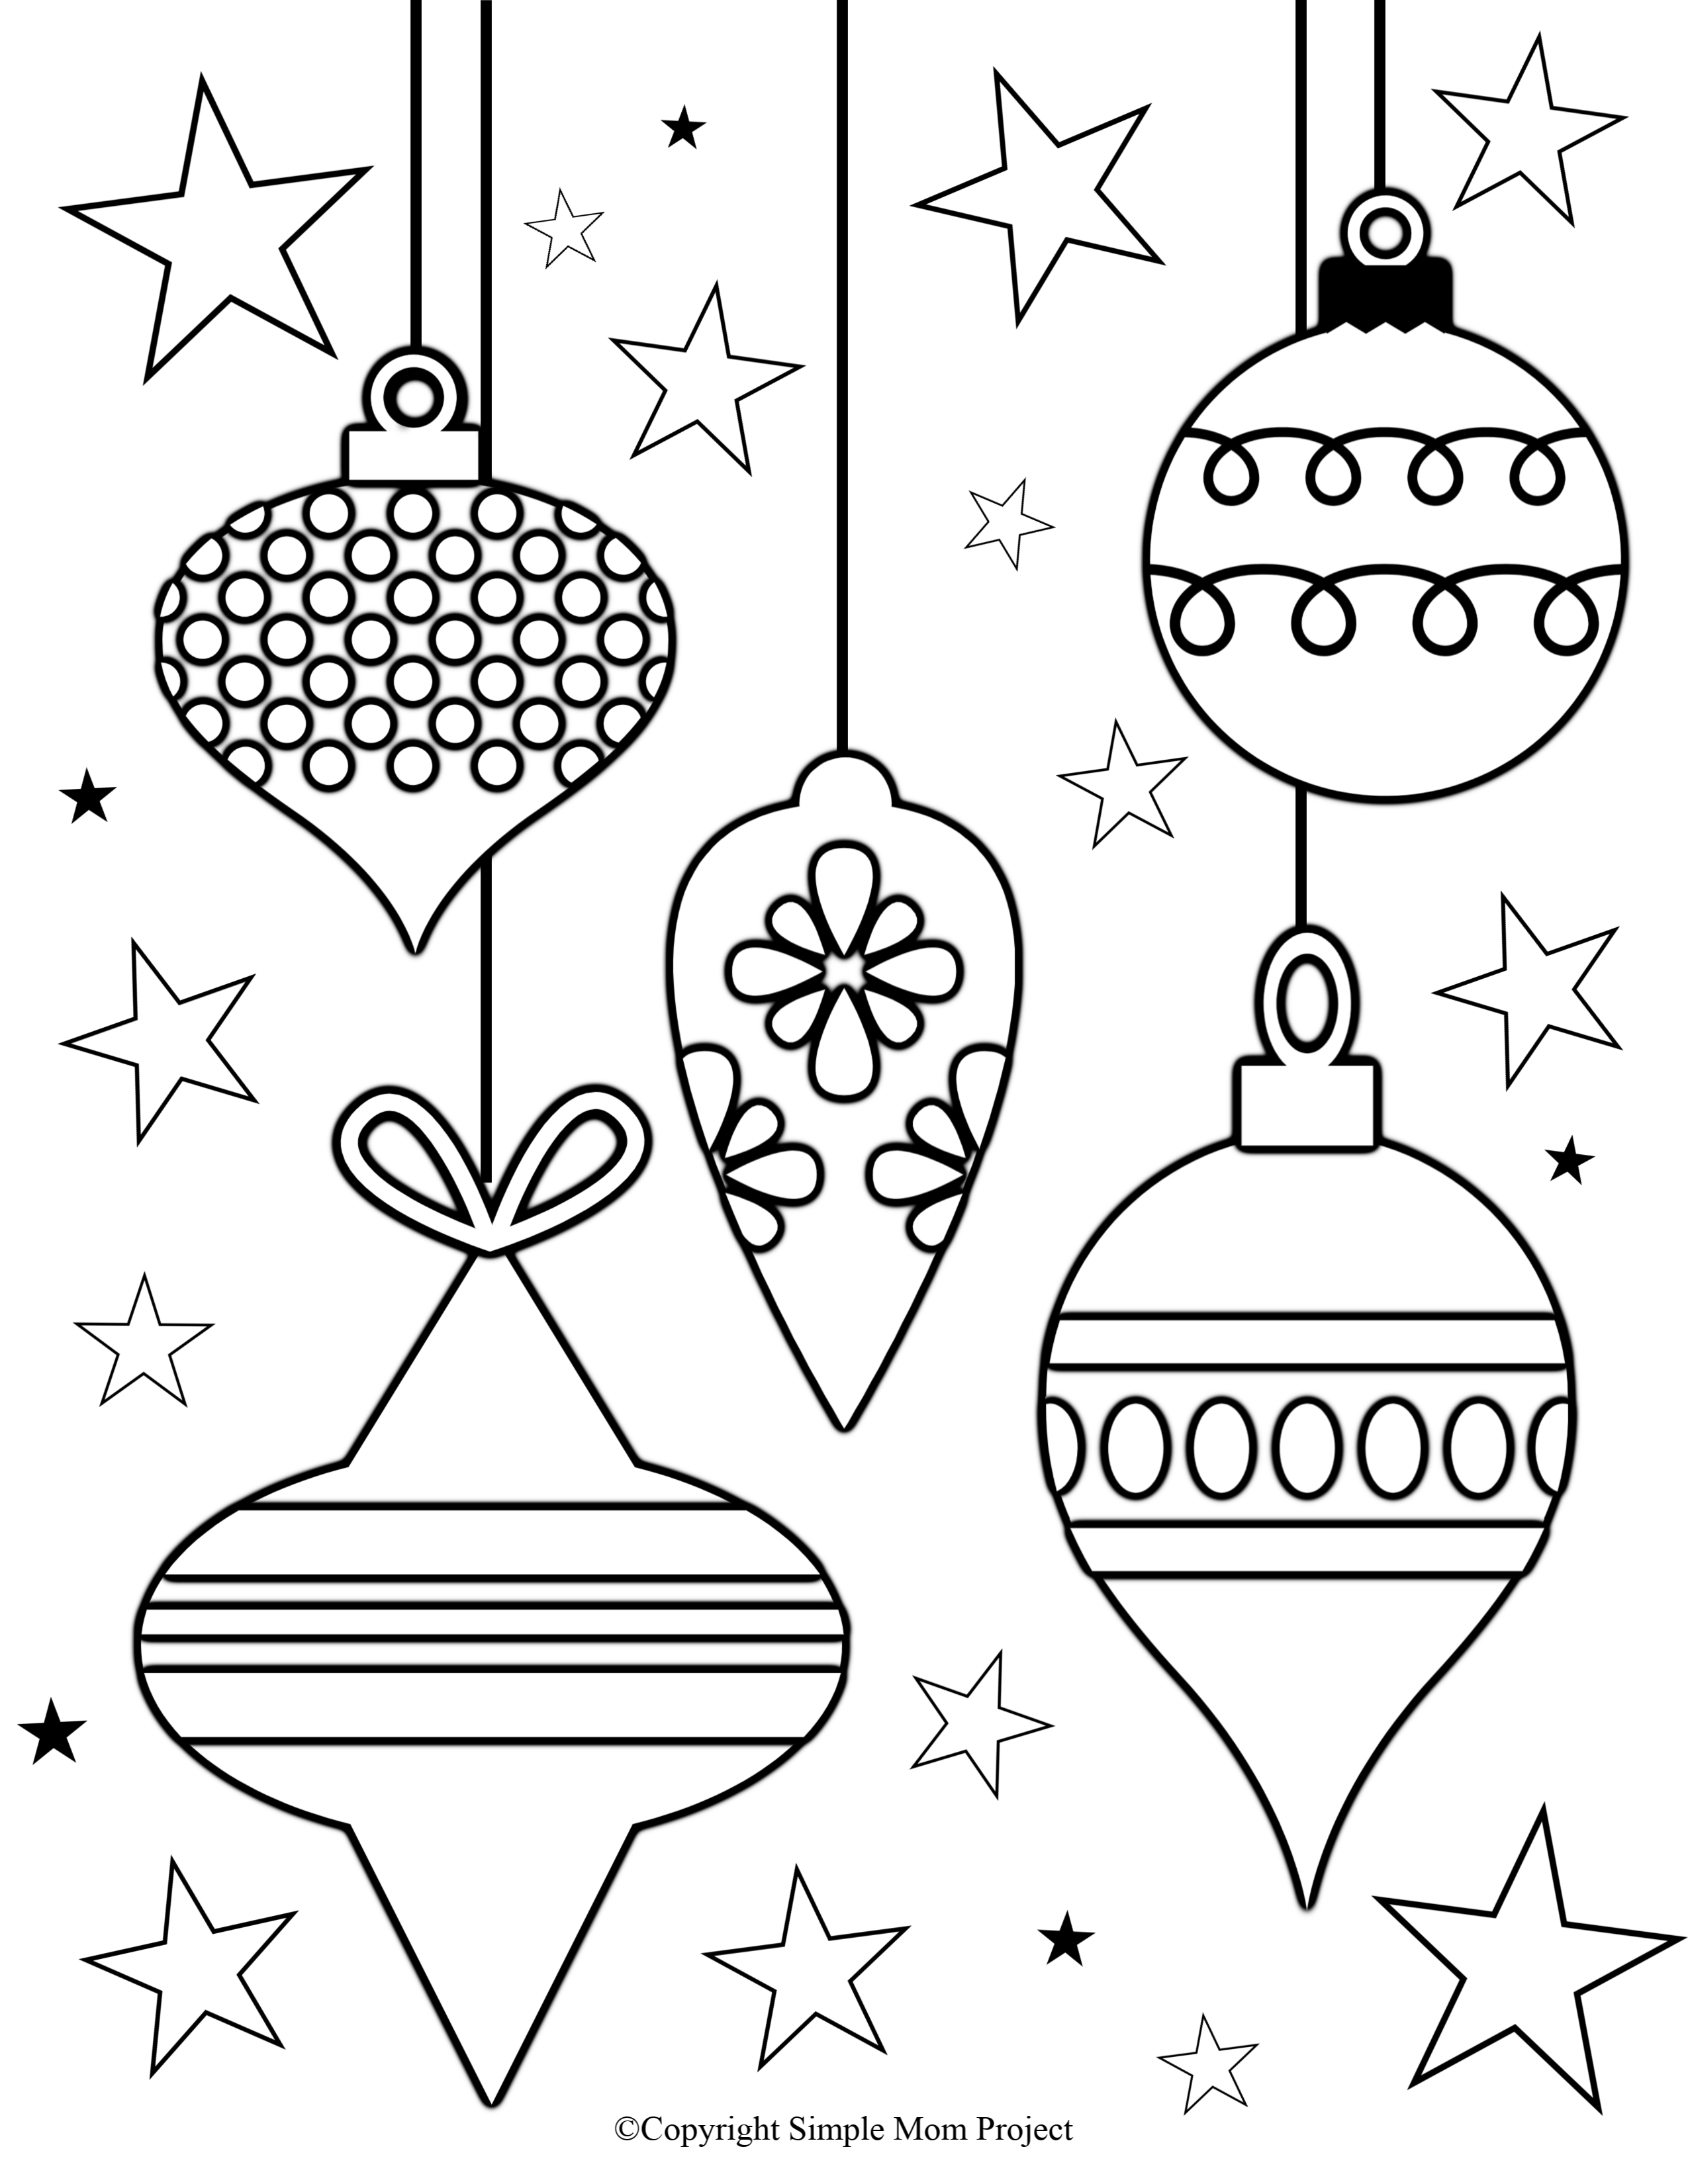 Click Now To Print These Cute Free Christmas Coloring Pages An Christmas Coloring Sheets For Kids Christmas Coloring Sheets Printable Christmas Coloring Pages